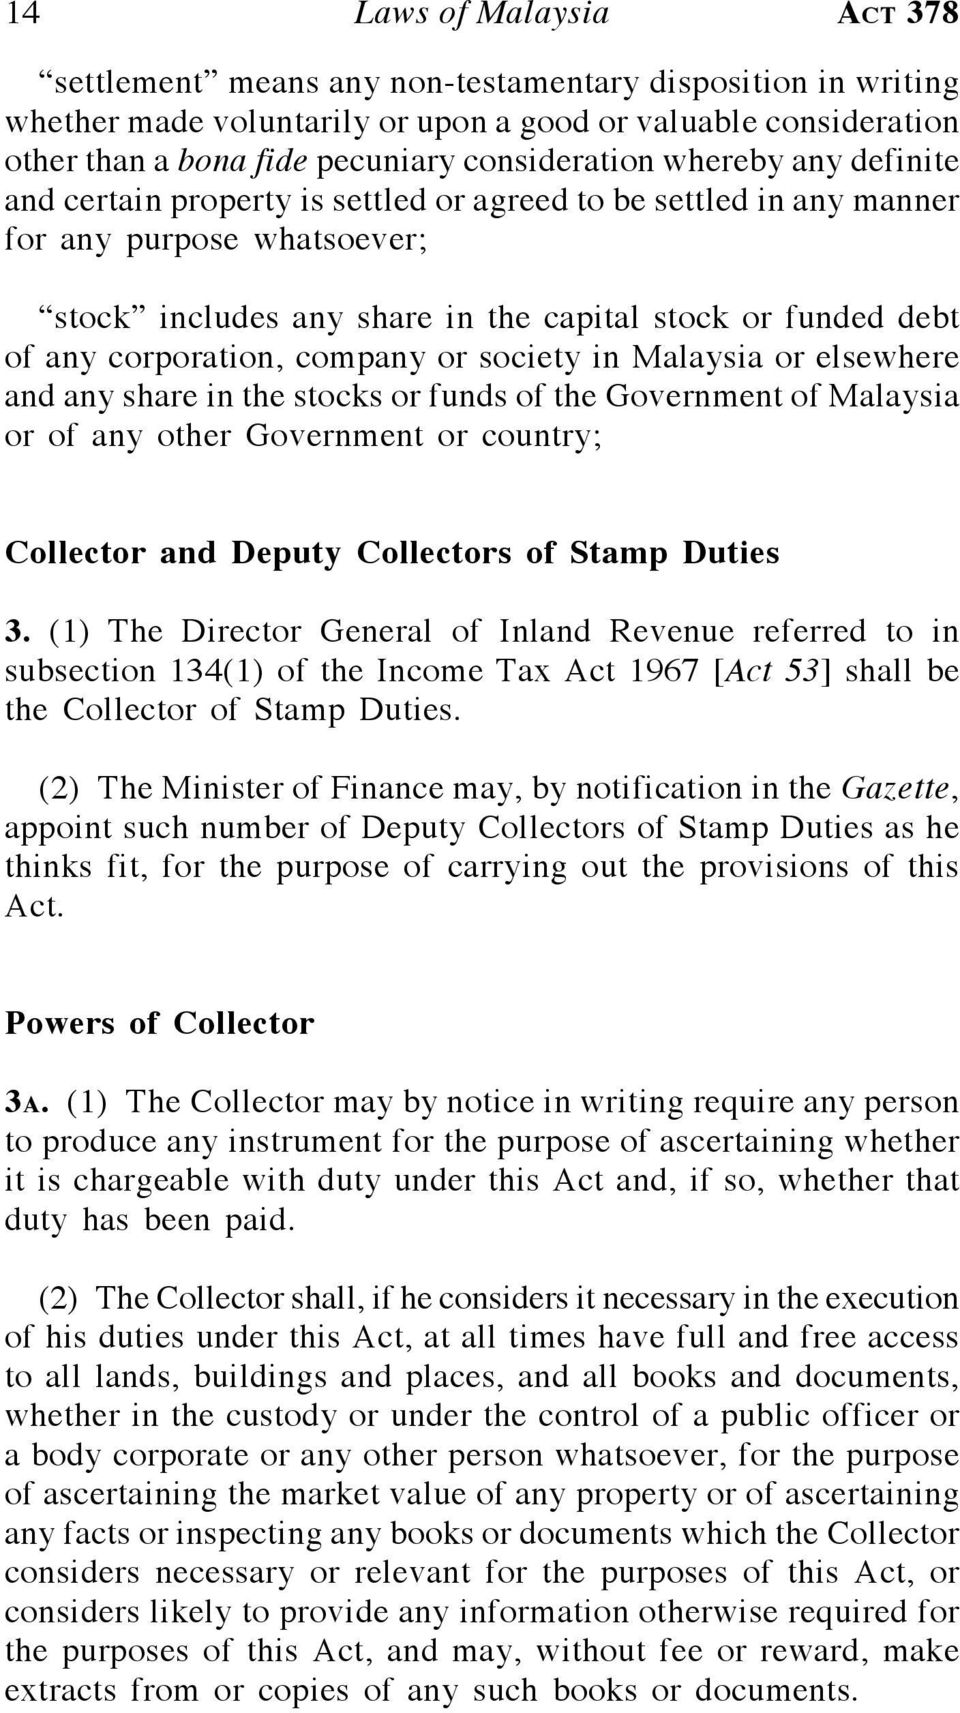 Stamp Laws Of Malaysia Reprint Act 378 Stamp Act Pdf Free Download